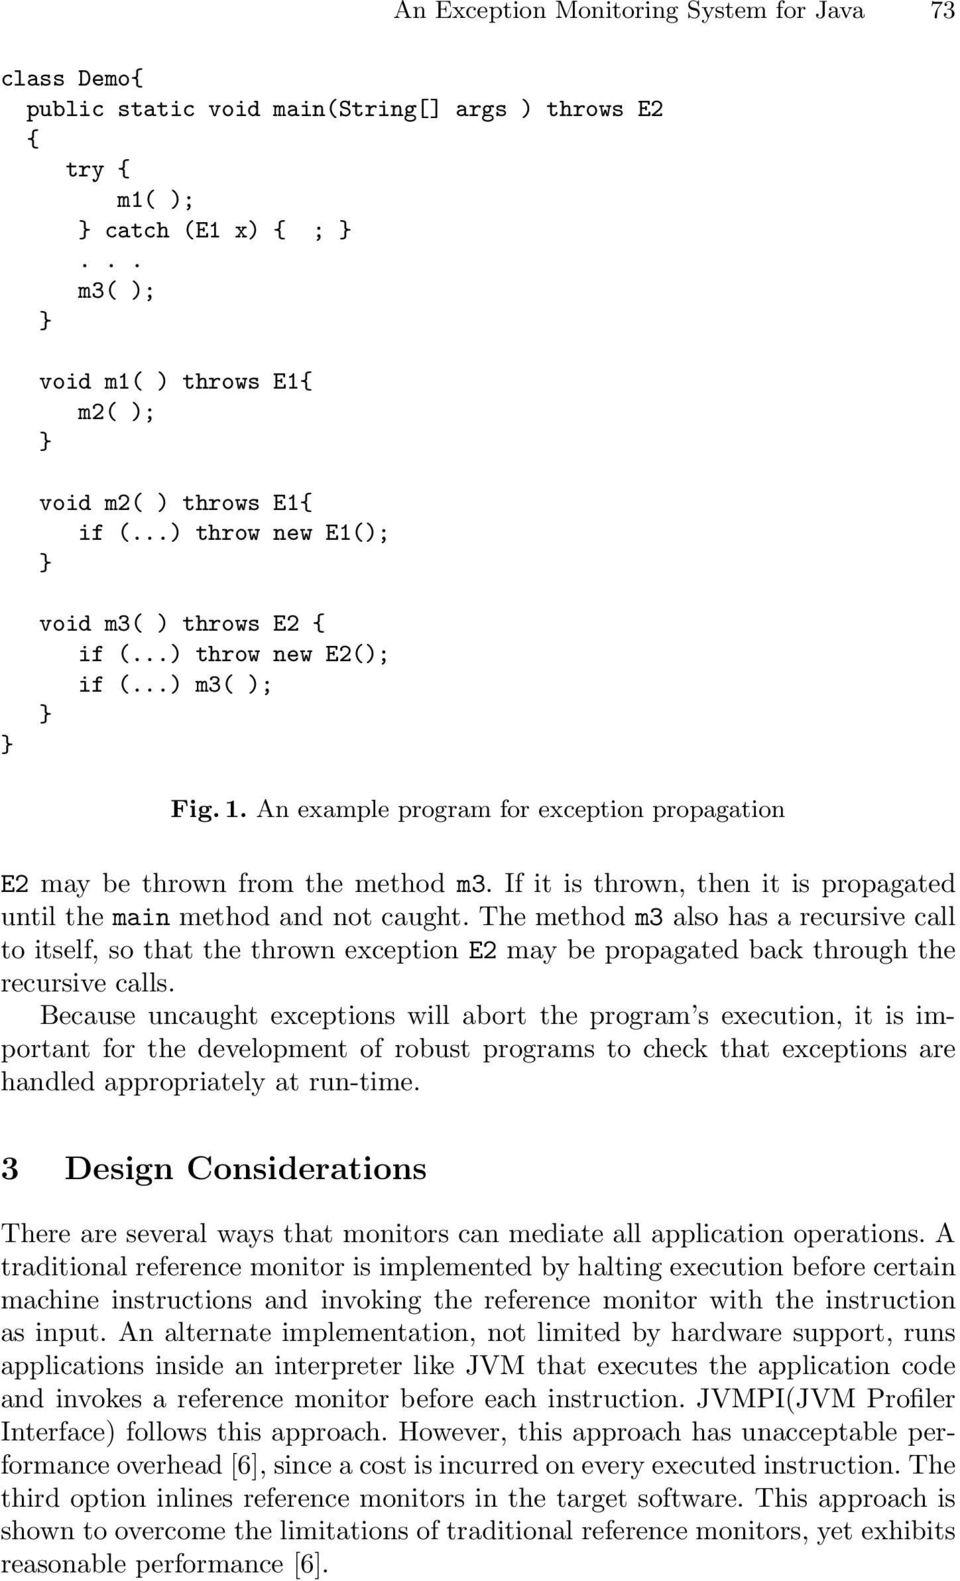 An example program for exception propagation E2 may be thrown from the method m3. If it is thrown, then it is propagated until the main method and not caught.